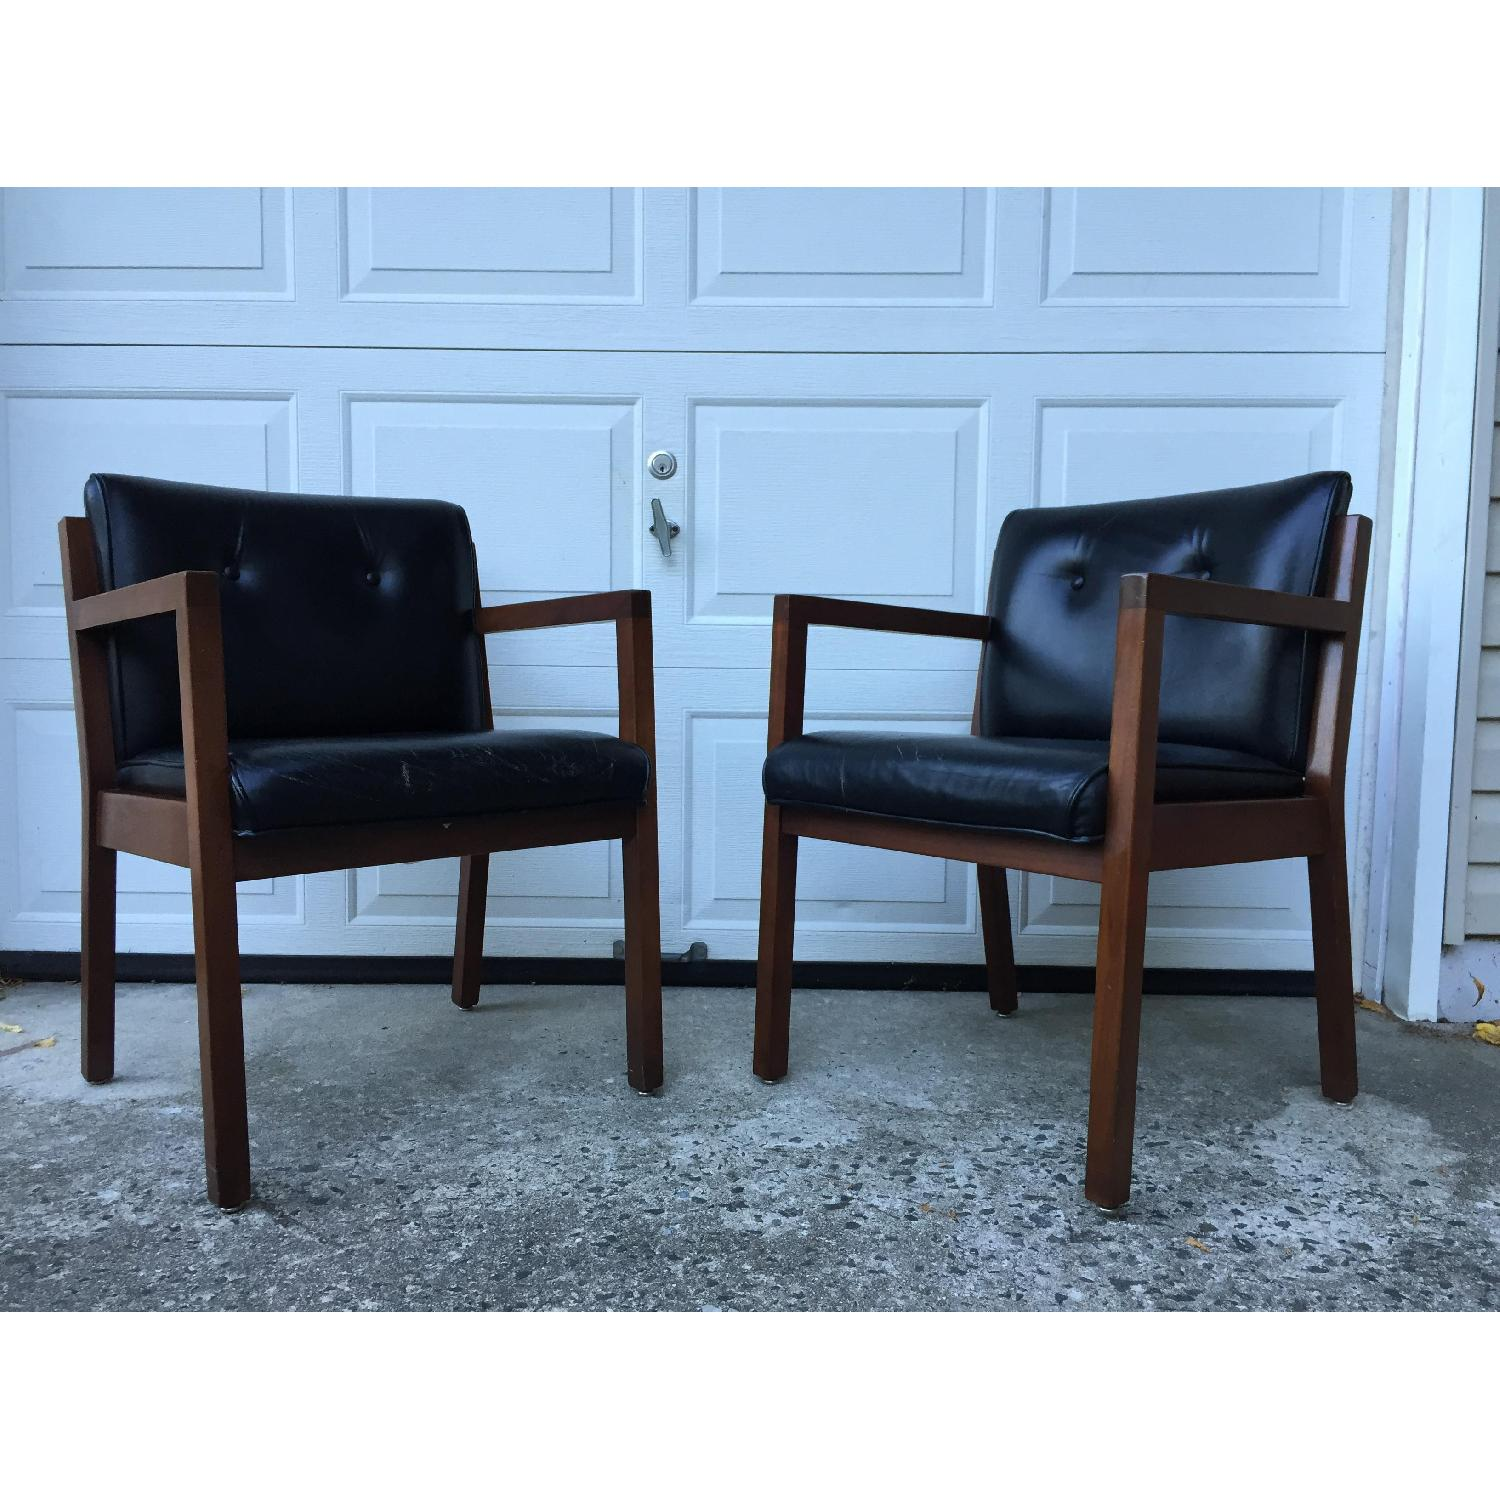 Jasper Chair Company Mid Century Modern Walnut Frame Chairs - Pair - image-1